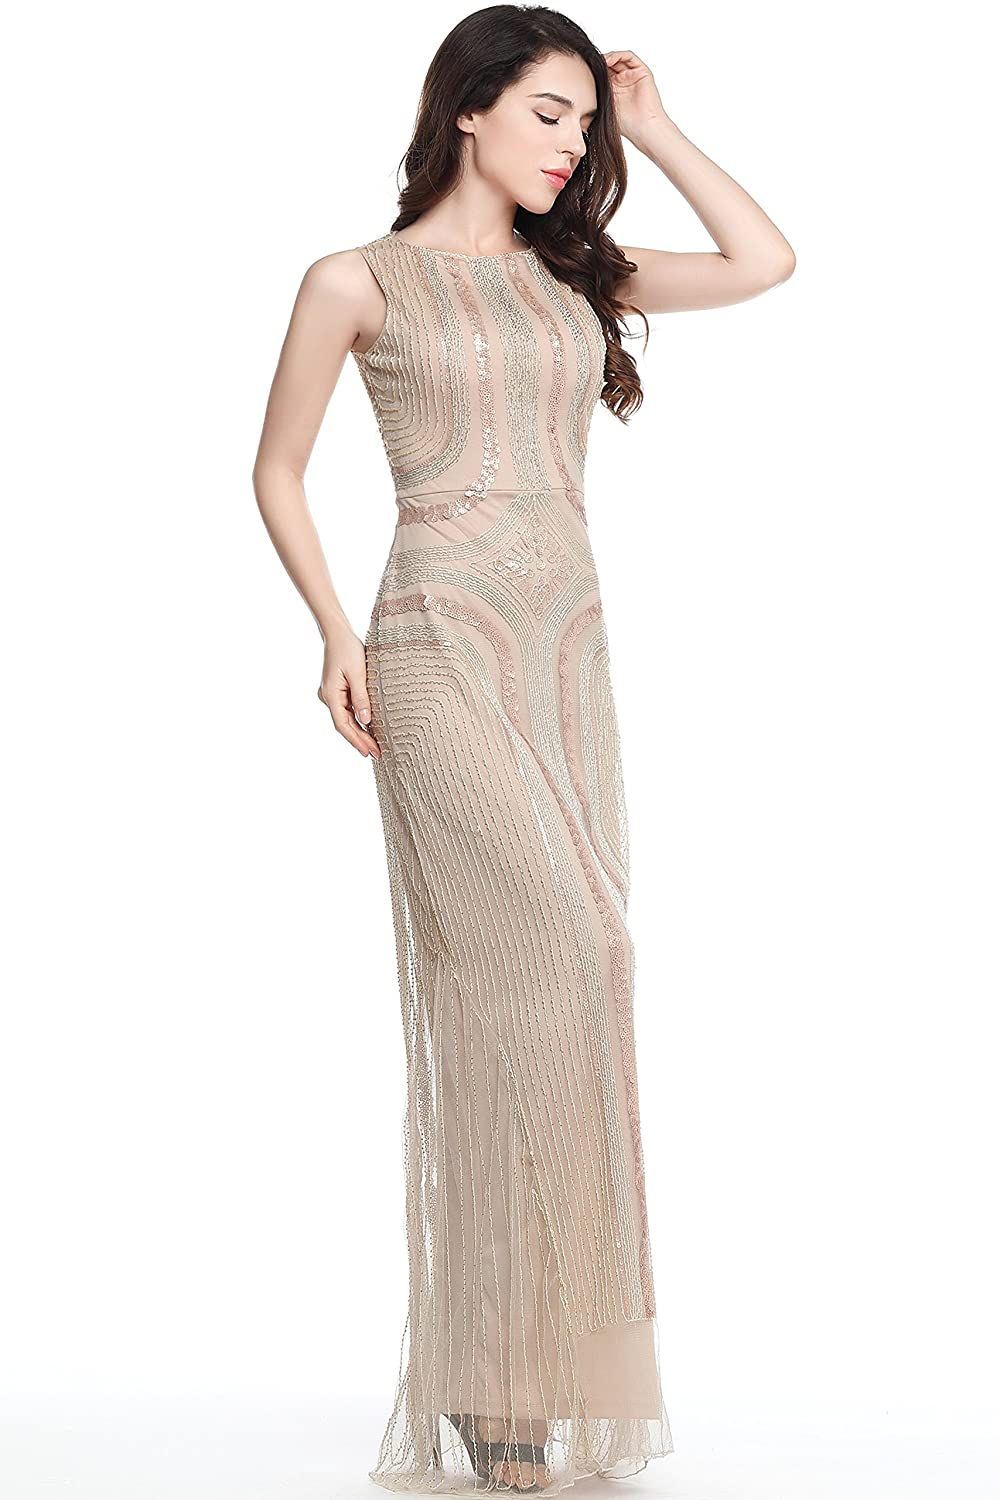 1920s Evening Gowns by Year BABEYOND 1920s Flapper Fancy Dress Roaring 20s Gatsby Dress Costume Vintage Sequin Beaded Long Evening Dress $39.99 AT vintagedancer.com